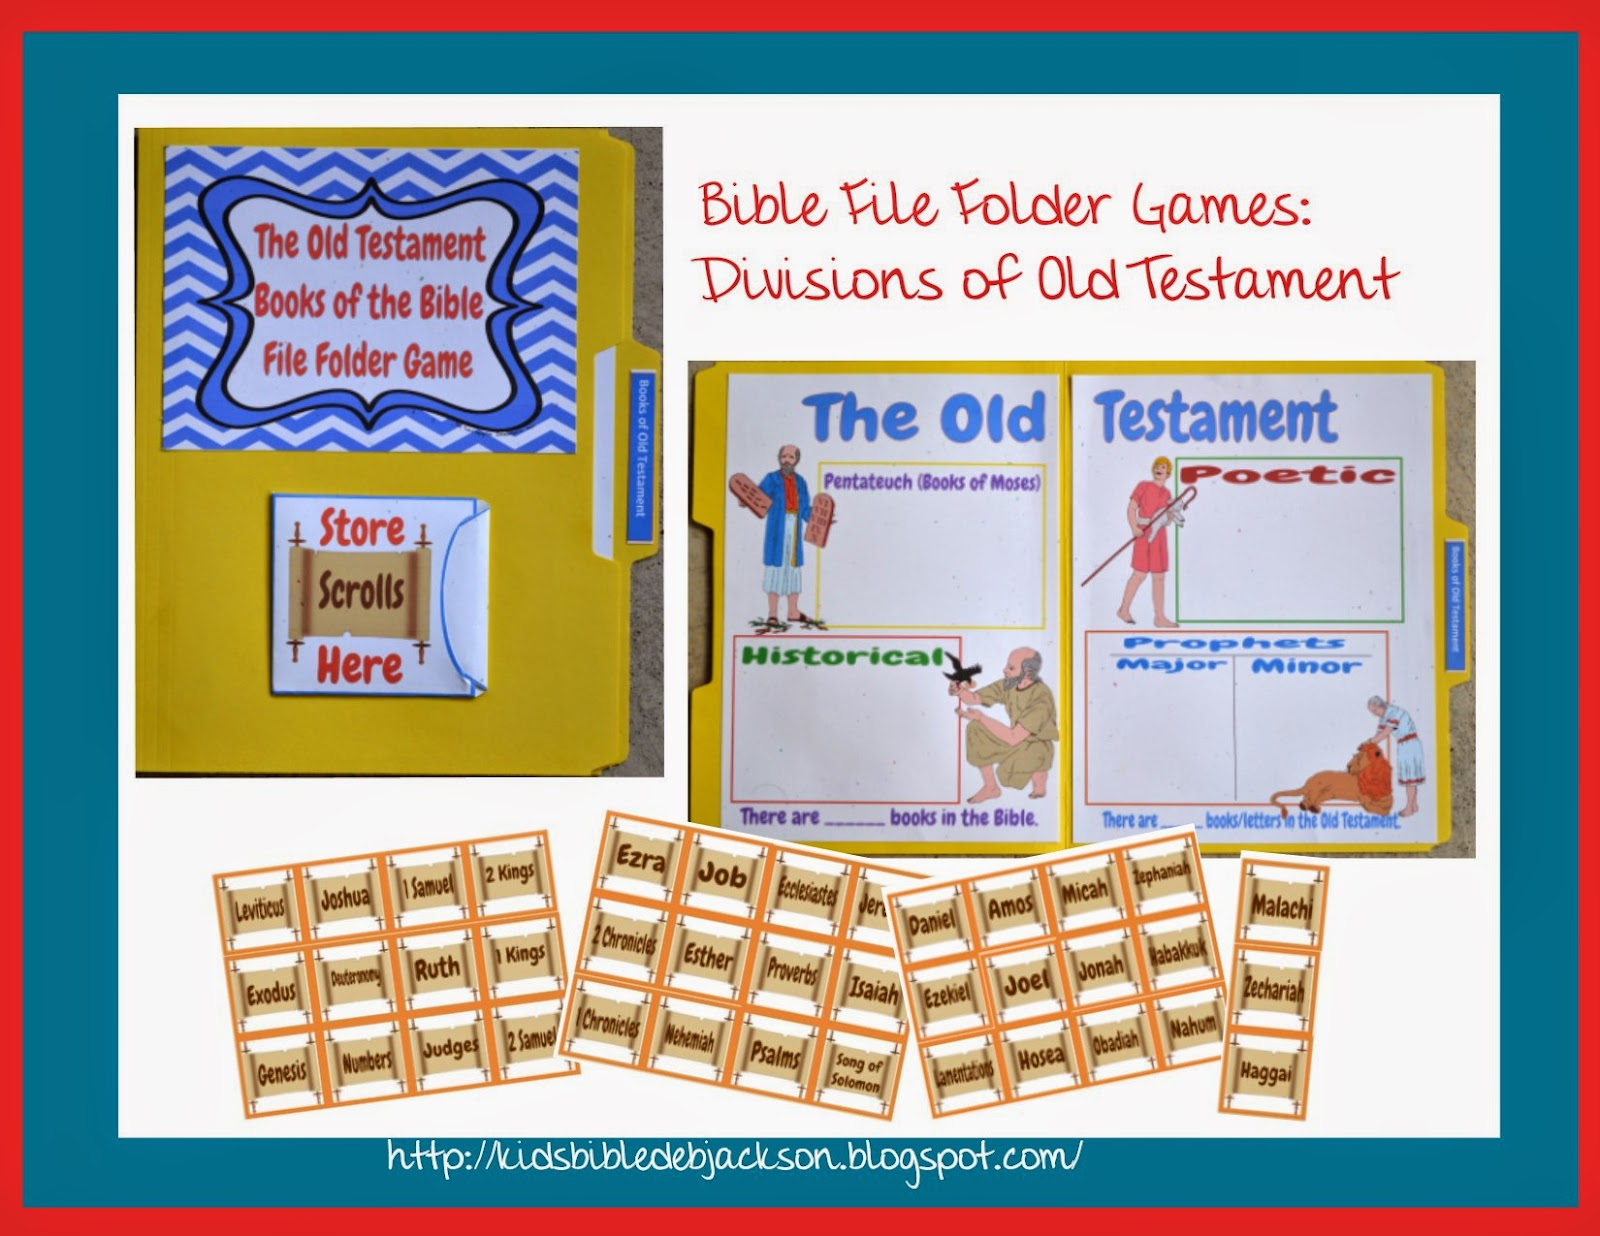 Bible Fun For Kids Bible File Folder Games